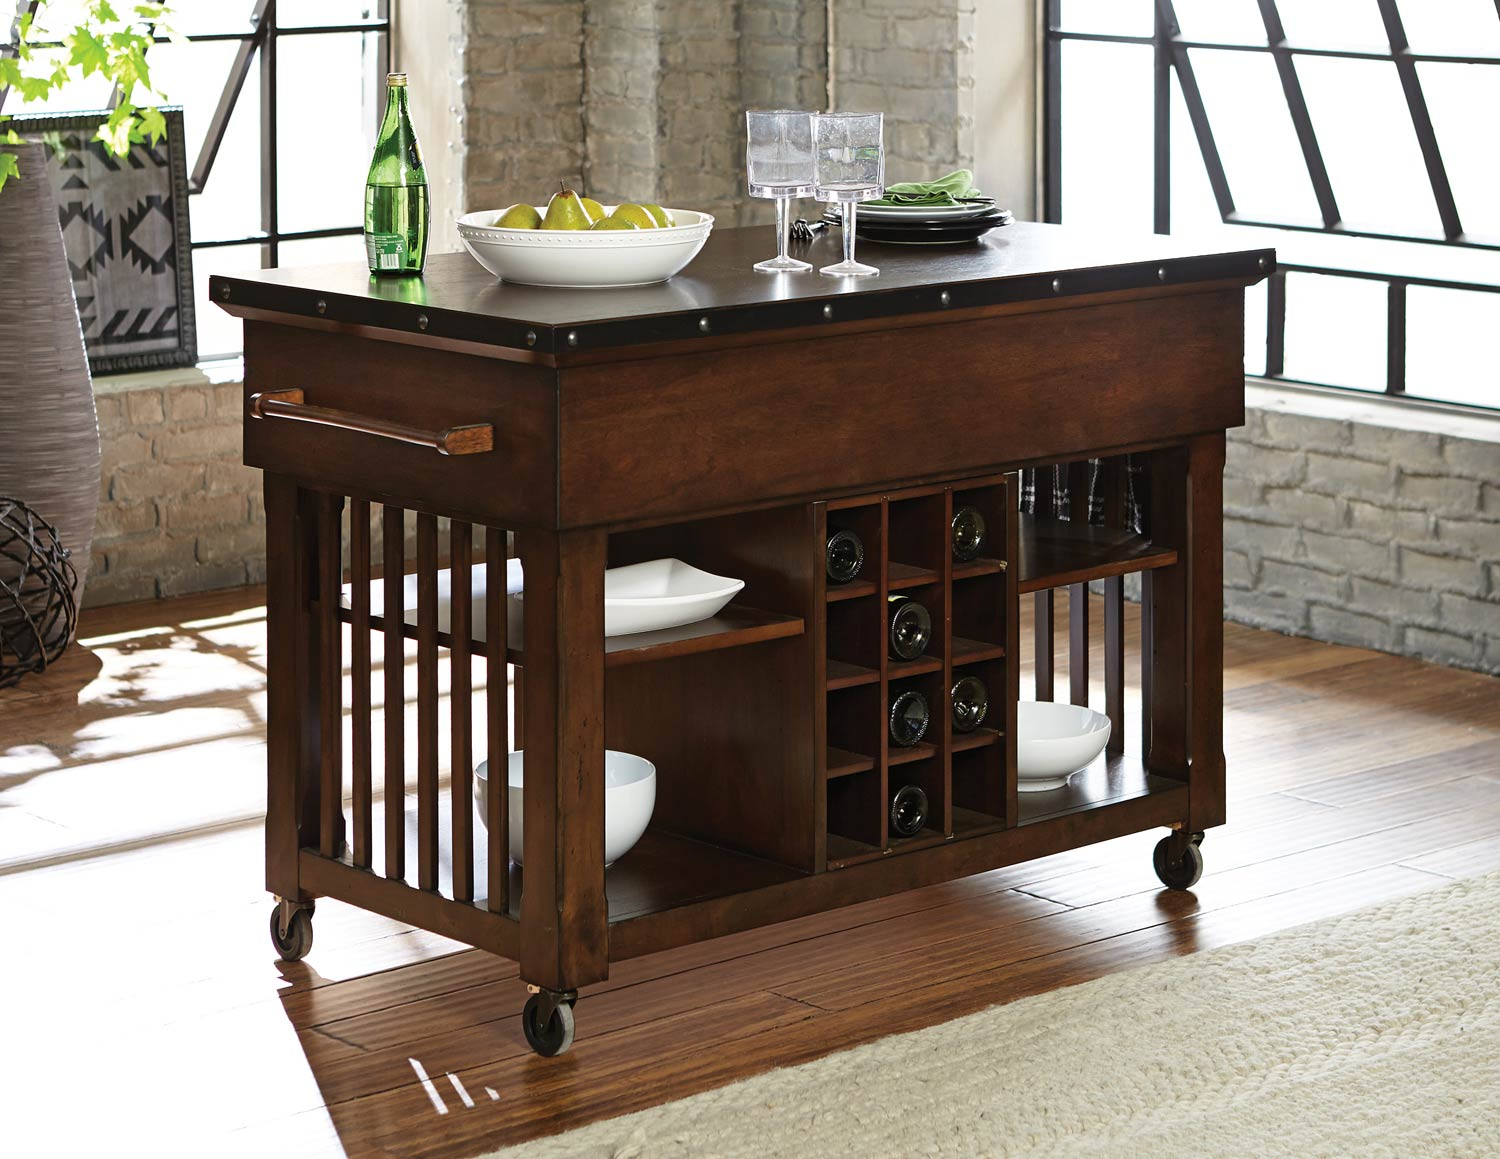 Homelegance Schleiger Kitchen Cart - Burnished Brown